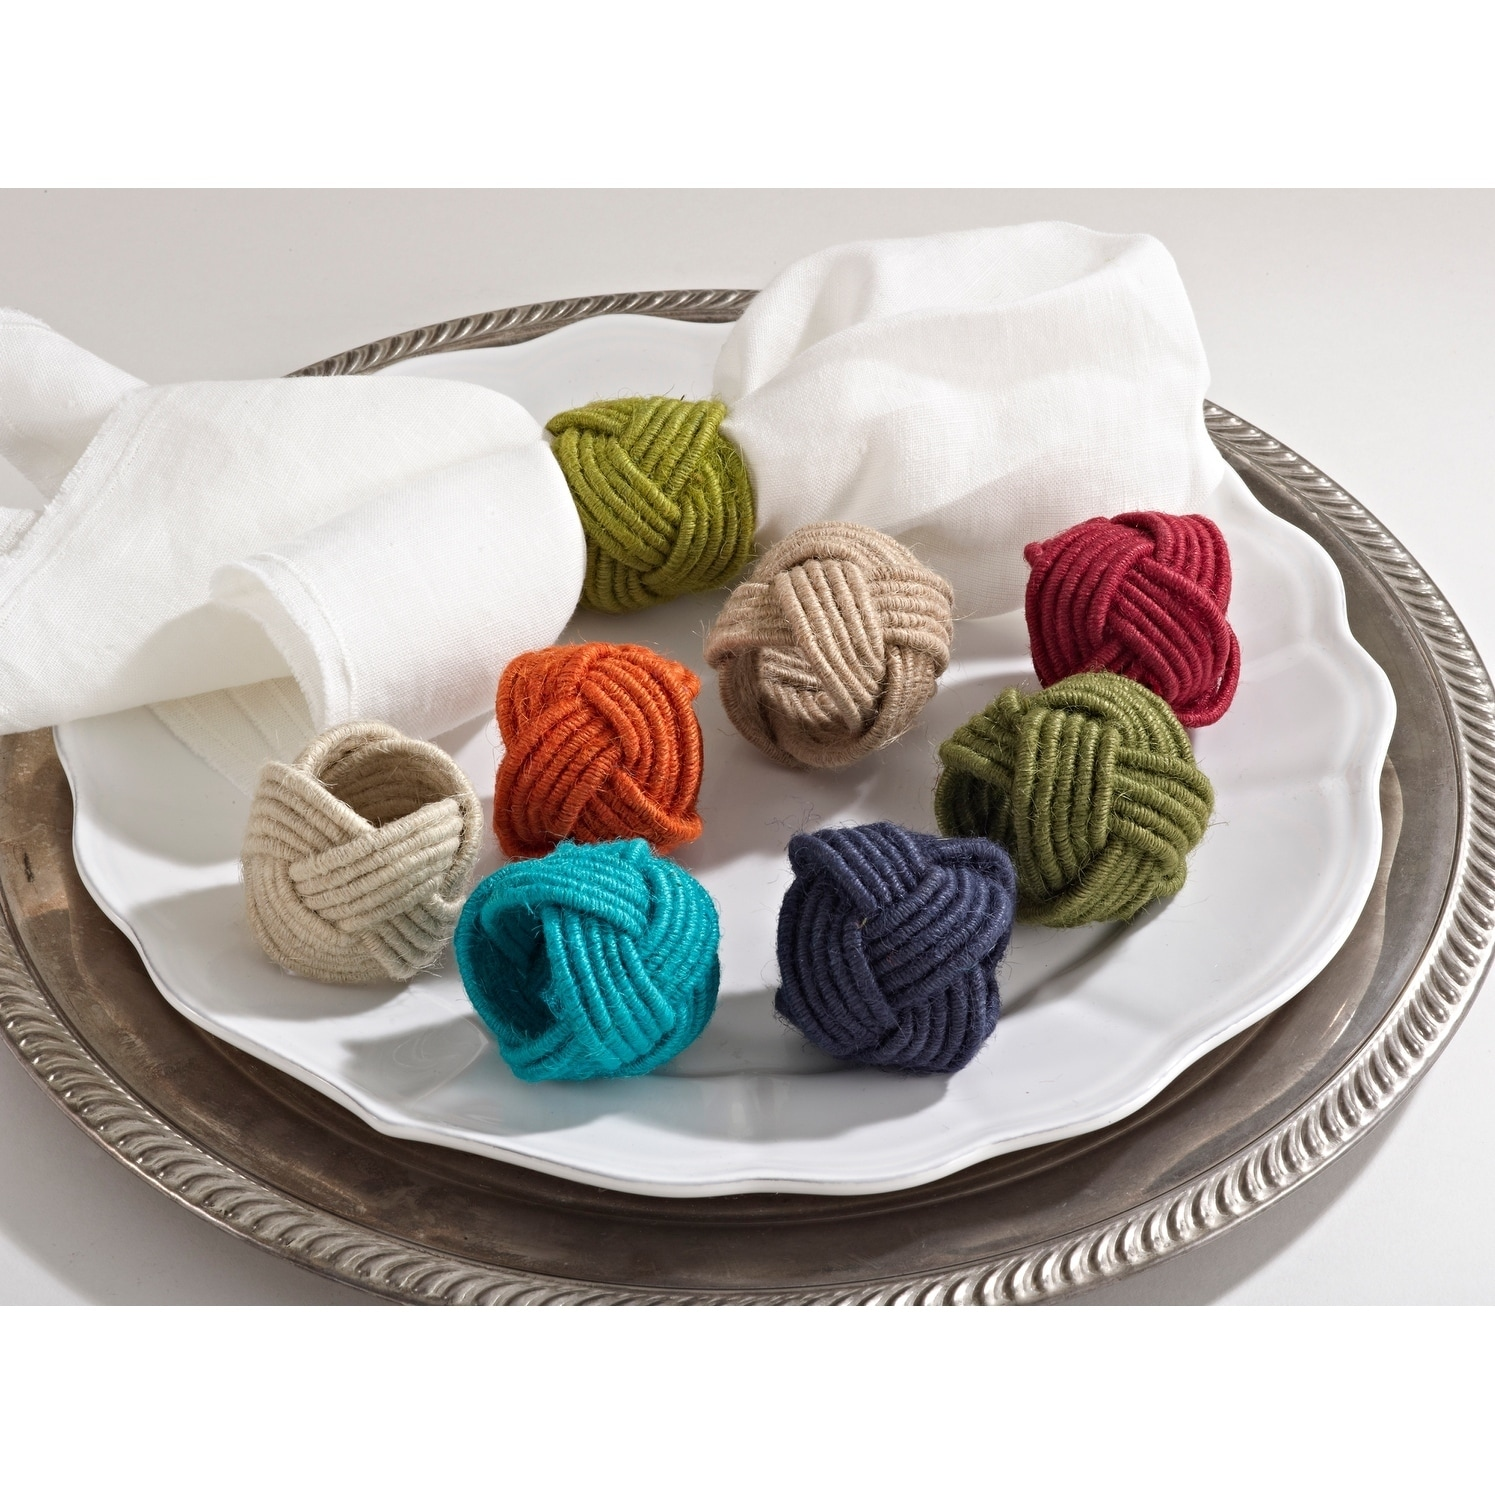 Tabletop Accessories Daily Use And Home Decor Jute Cotton Jute Napkin Rings Sef Of 4 Wedding Handmade Braided Burlap Napkin Ring Natural Woven Rope Serviette Buckles Holder For Table Setting Thanksgiving Day